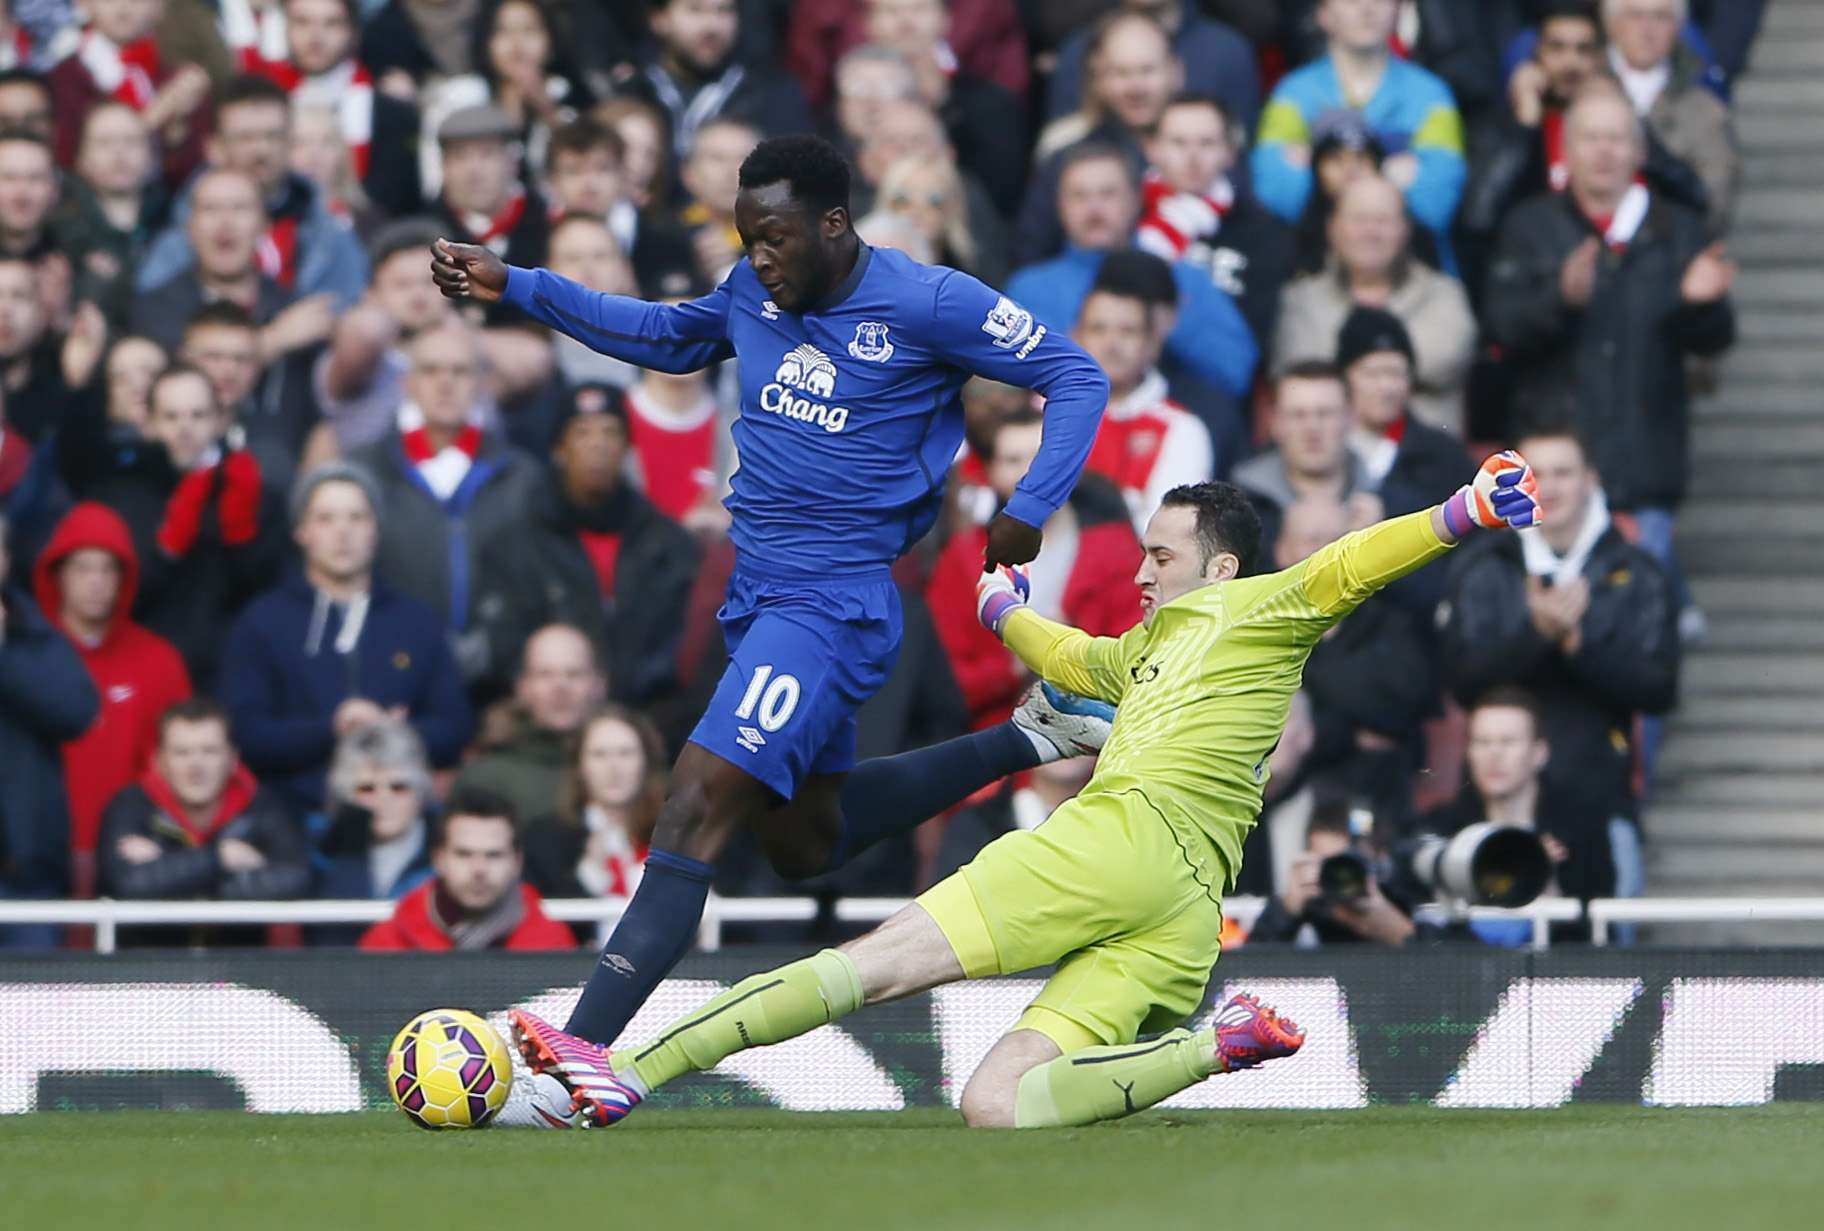 "Football - Arsenal v Everton - Barclays Premier League - Emirates Stadium - 1/3/15 Arsenal's David Ospina in action against Everton's Romelu Lukaku Reuters / Stefan Wermuth Livepic EDITORIAL USE ONLY. No use with unauthorized audio, video, data, fixture lists, club/league logos or ""live"" services. Online in-match use limited to 45 images, no video emulation. No use in betting, games or single club/league/player publications. Please contact your account representative for further details. Foto: Stefan Wermuth/REUTERS"